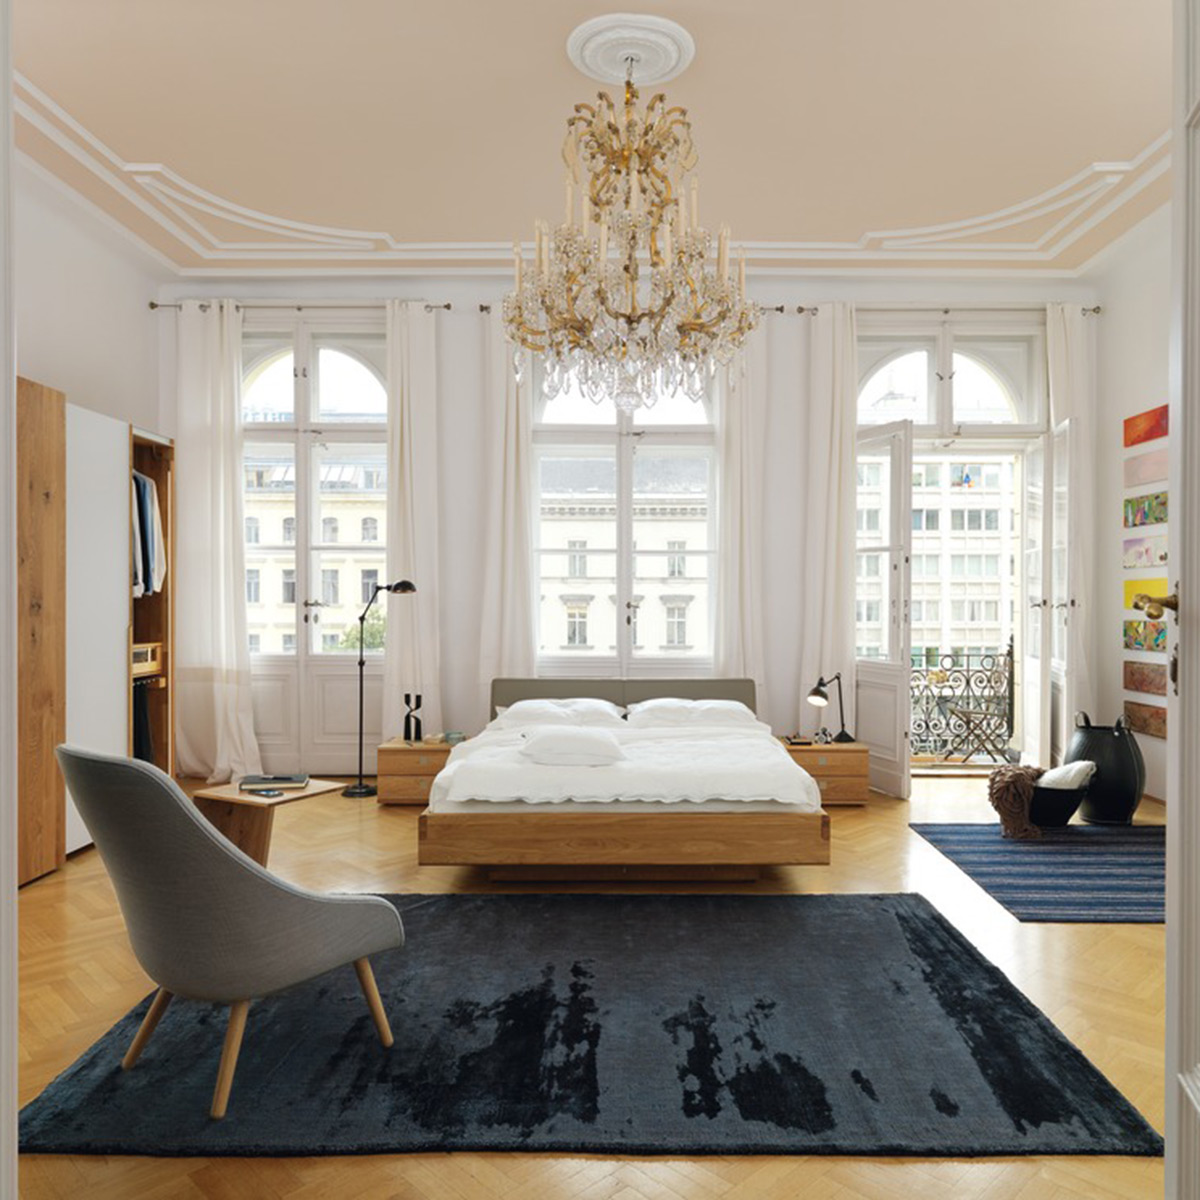 schlafzimmer komplett nussbaum schwarz farben feng shui schlafzimmer ideen low budget. Black Bedroom Furniture Sets. Home Design Ideas